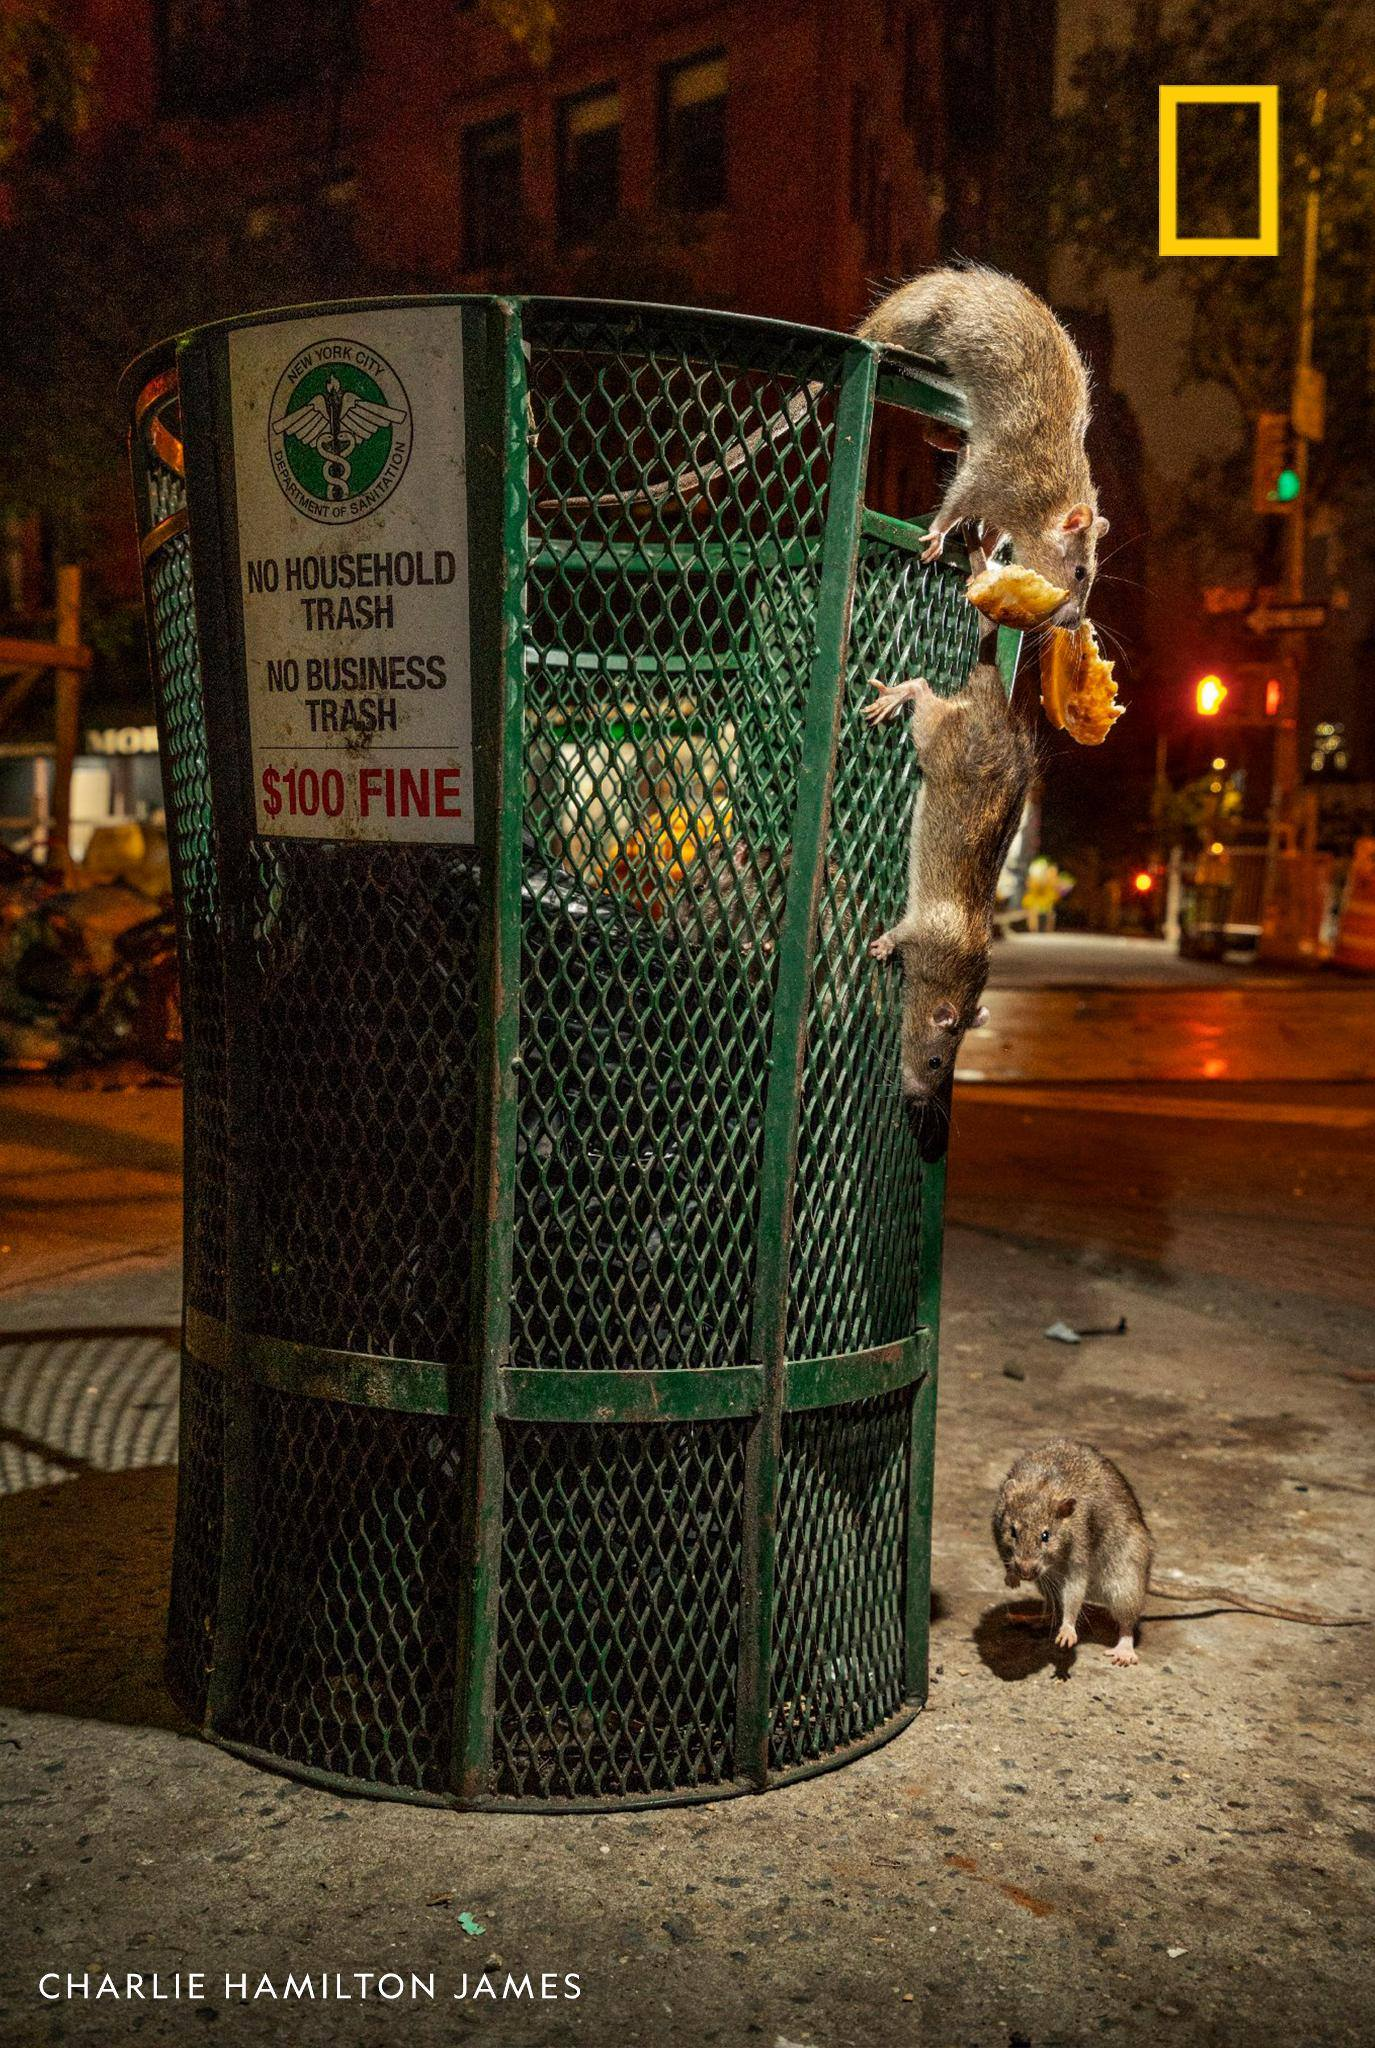 "Rats have adapted over the millennia to survive and thrive in human company, much to our amazement and disgust. Meet an urban rodentologist in our podcast ""Overheard""—and maybe gain a new appreciation for these resilient creatures. https://on.natgeo.com/2Xxu9fZ"